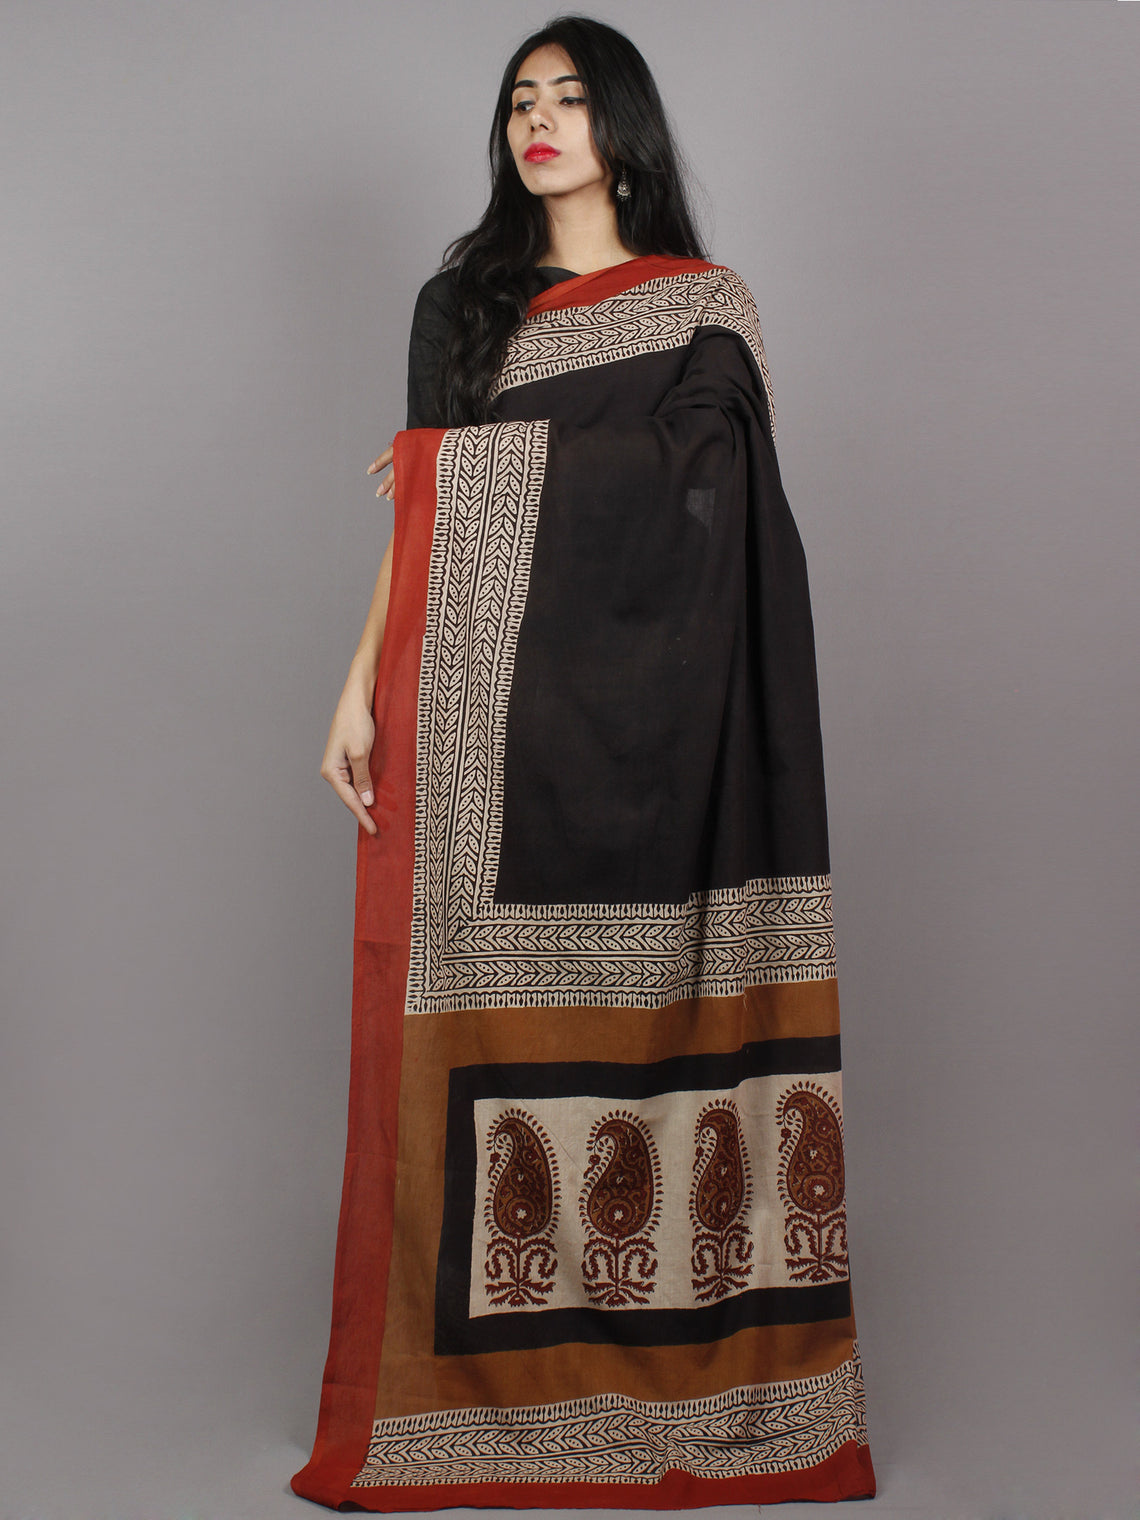 Black Maroon Beige Hand Block Painted & Printed Cotton Mul Saree - S031701359